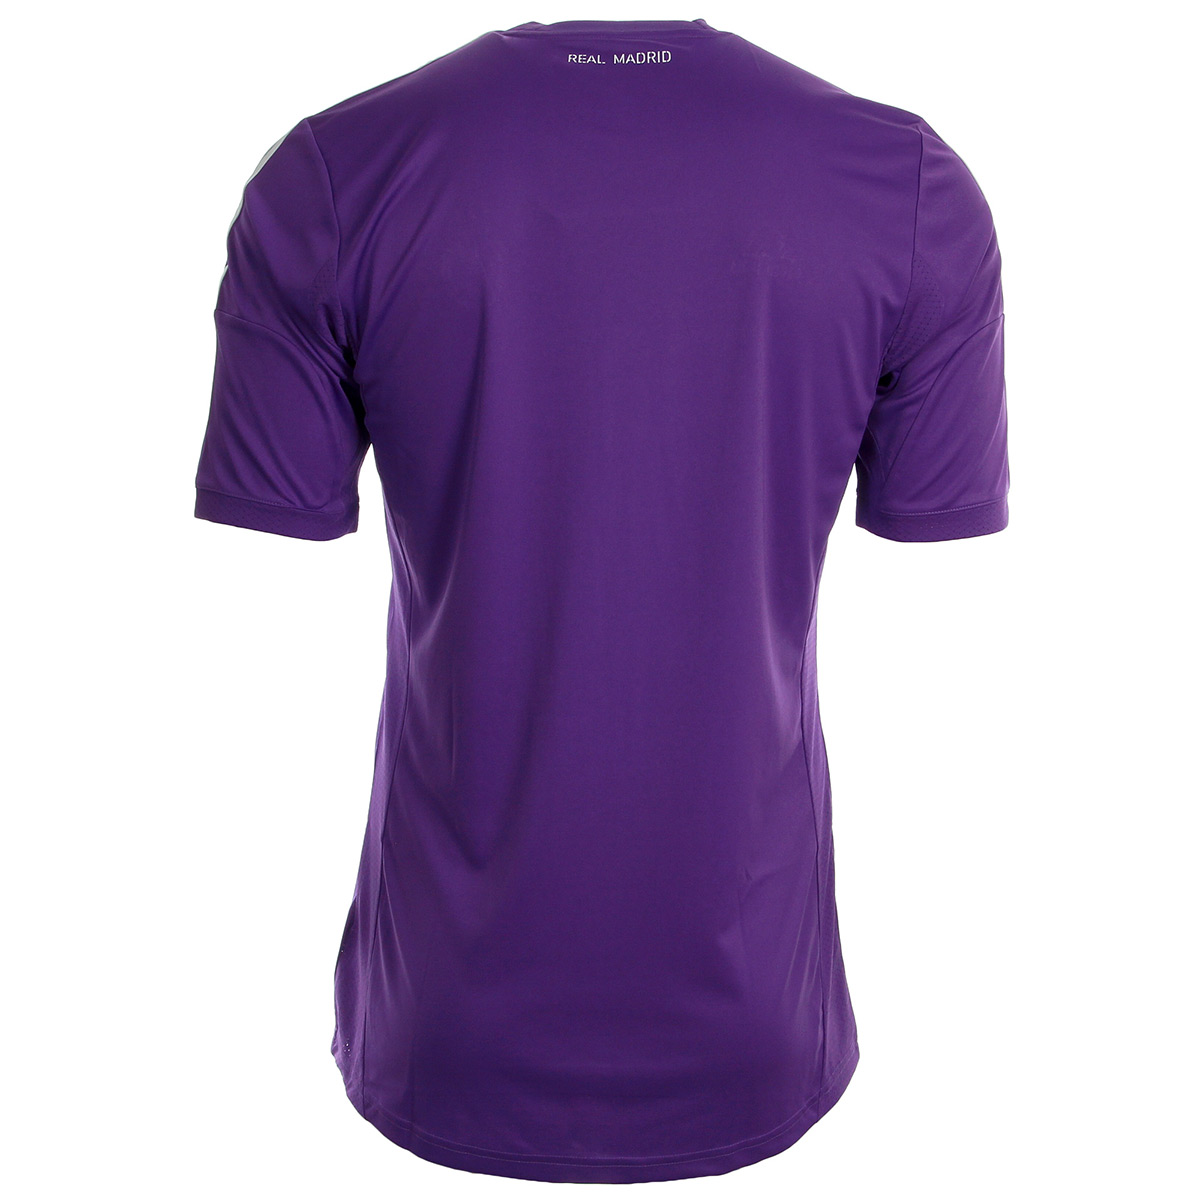 adidas Performance Real Home Gk Jersey G81065, Maillots équipes football homme